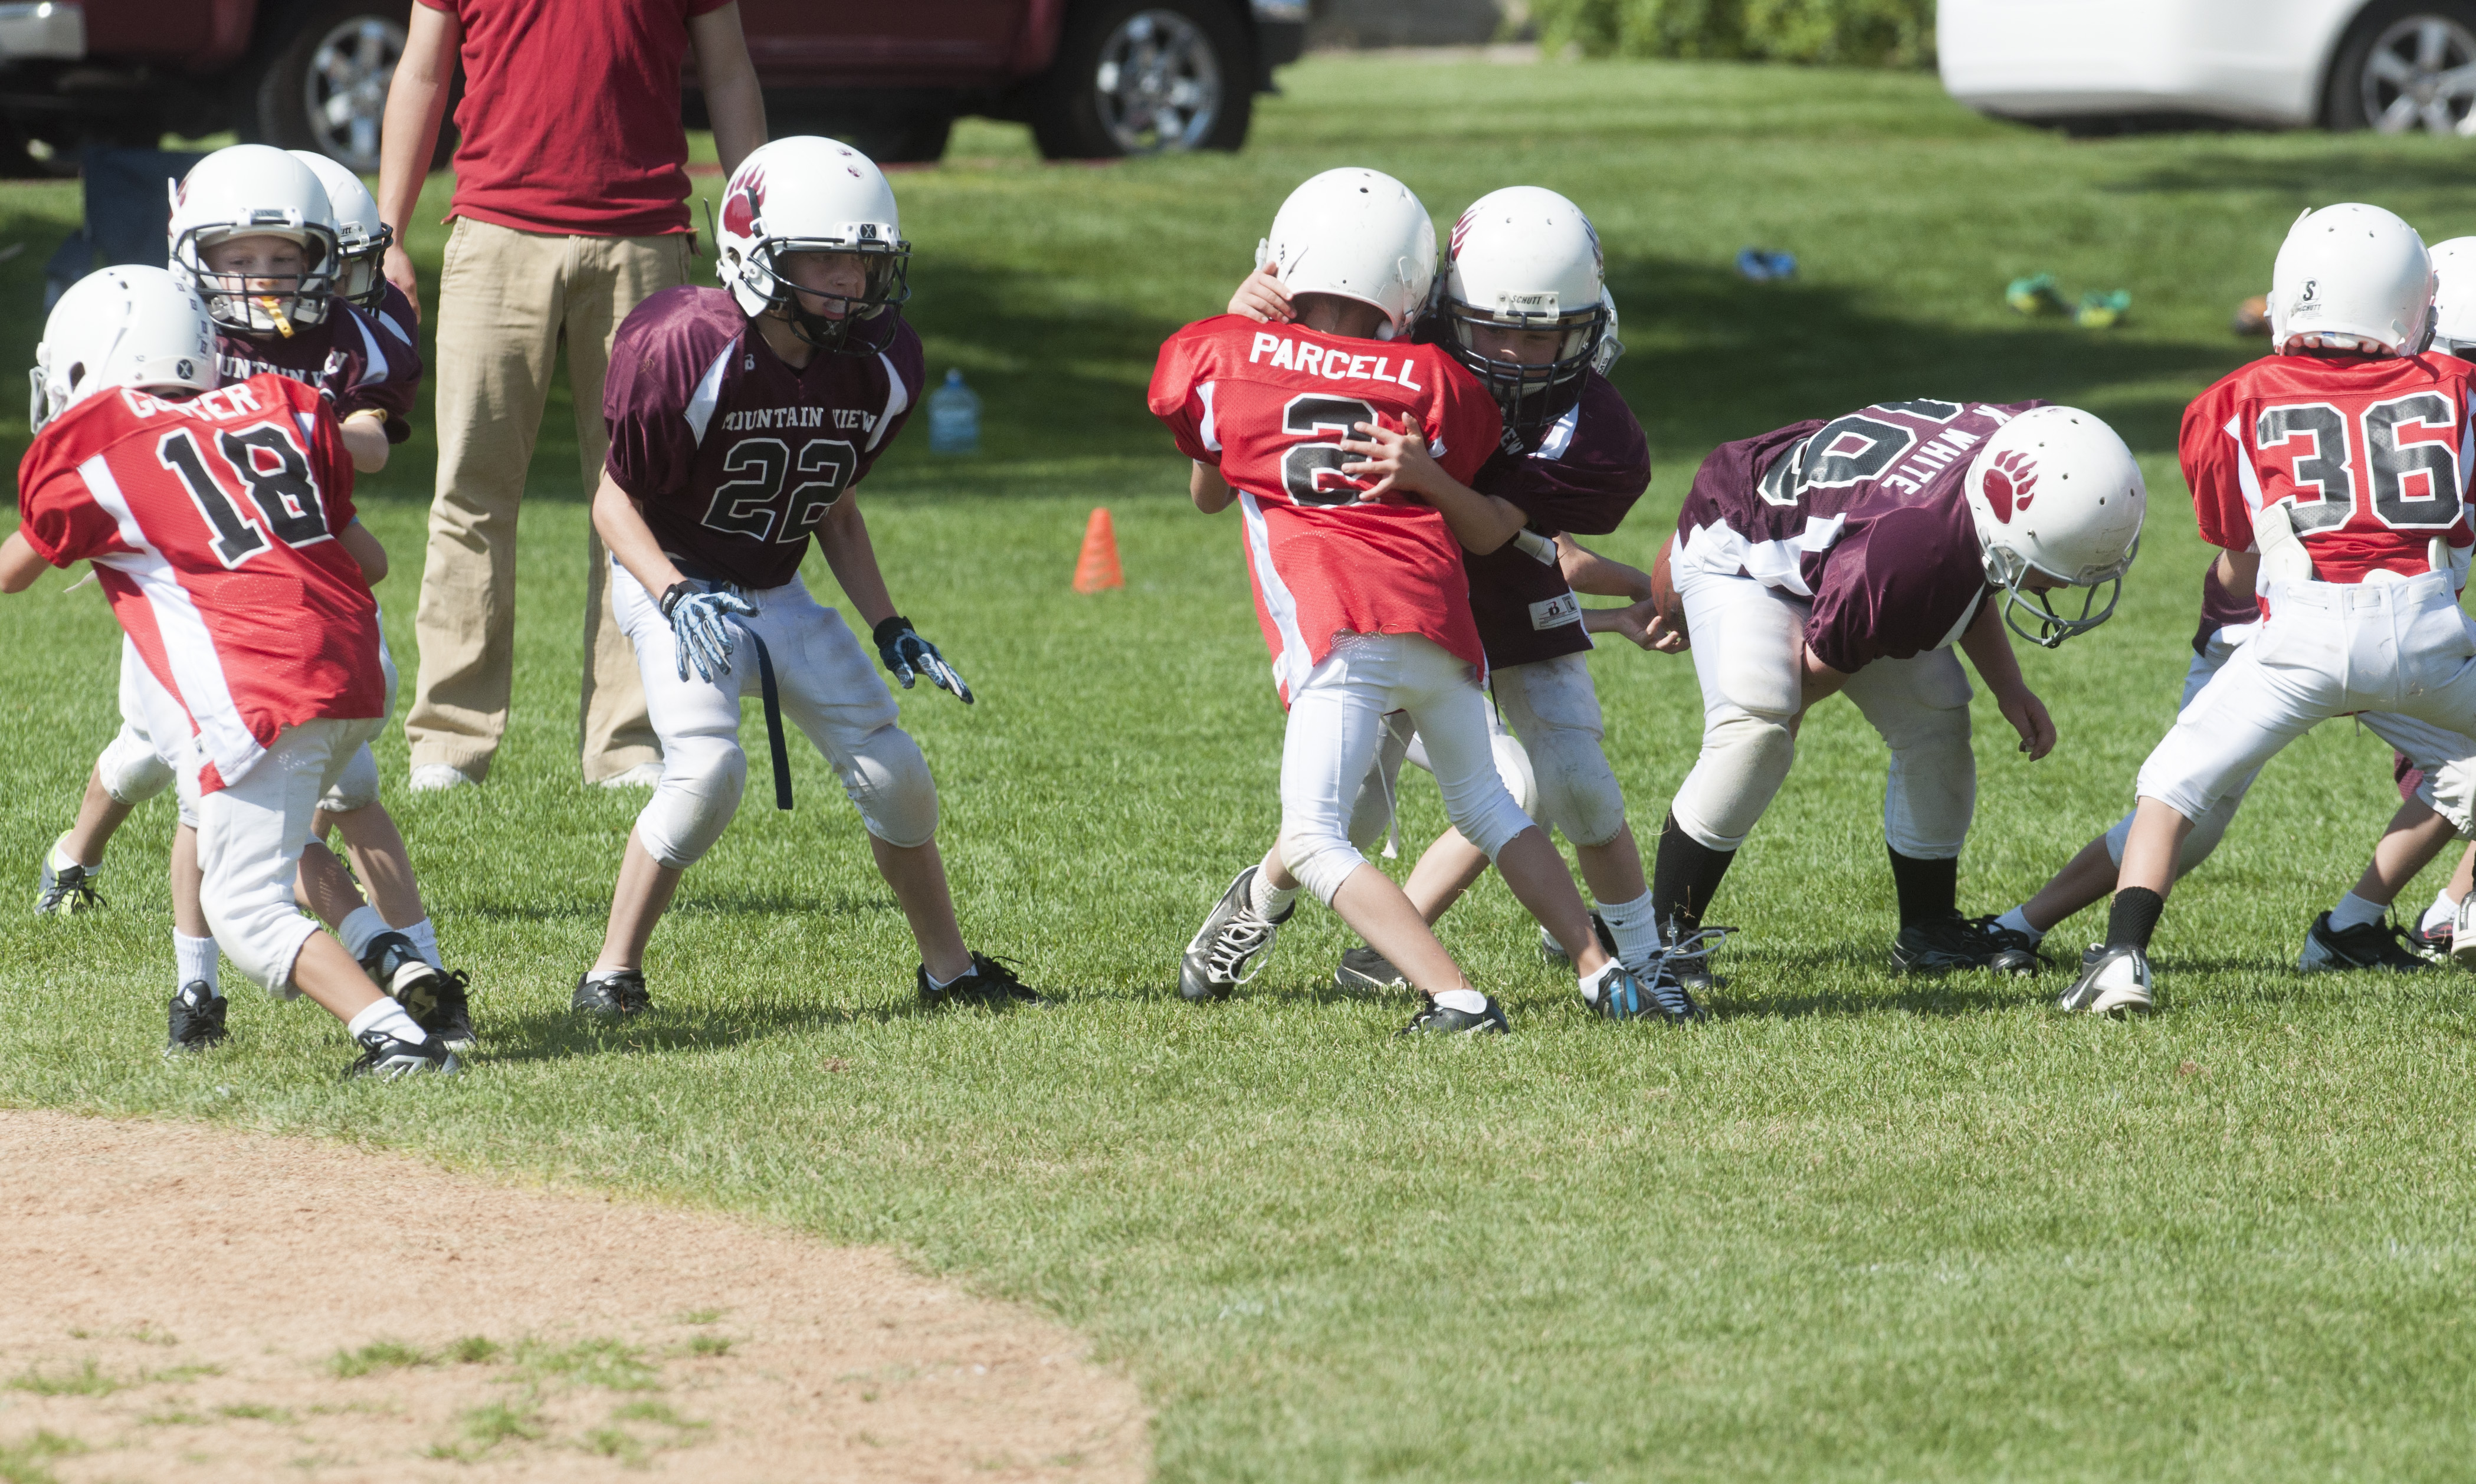 A little league team coached by students take on their competitors.